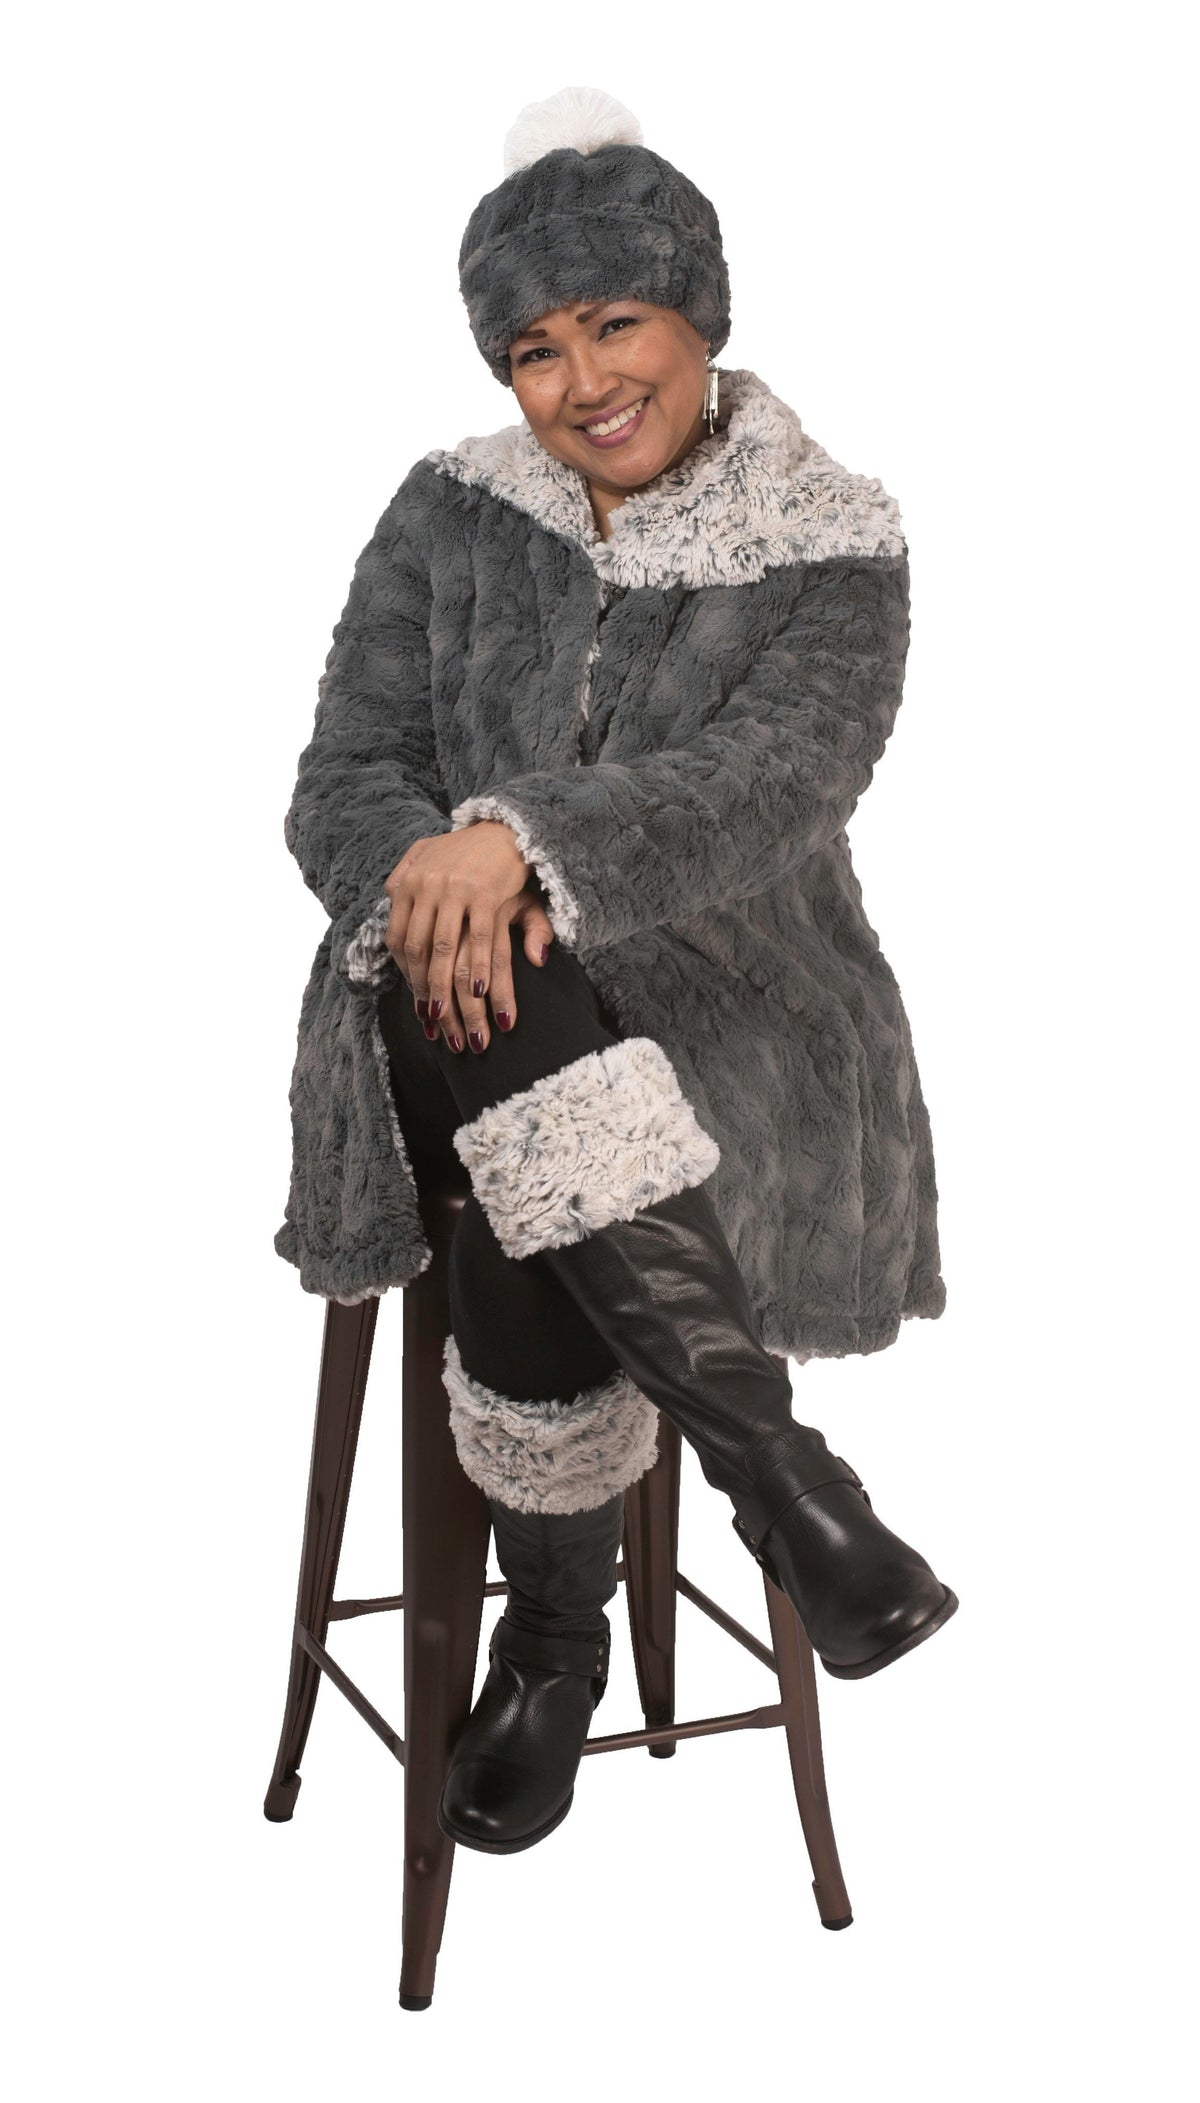 Hepburn Swing Coat, Reversible less pockets - Luxury Faux Fur in Stratus with Cuddly Fur (Two XL in Sienna / Two Large & One Medium in Silver Left!) X-Small / Sienna Stratus / Chocolate Outerwear Pandemonium Millinery